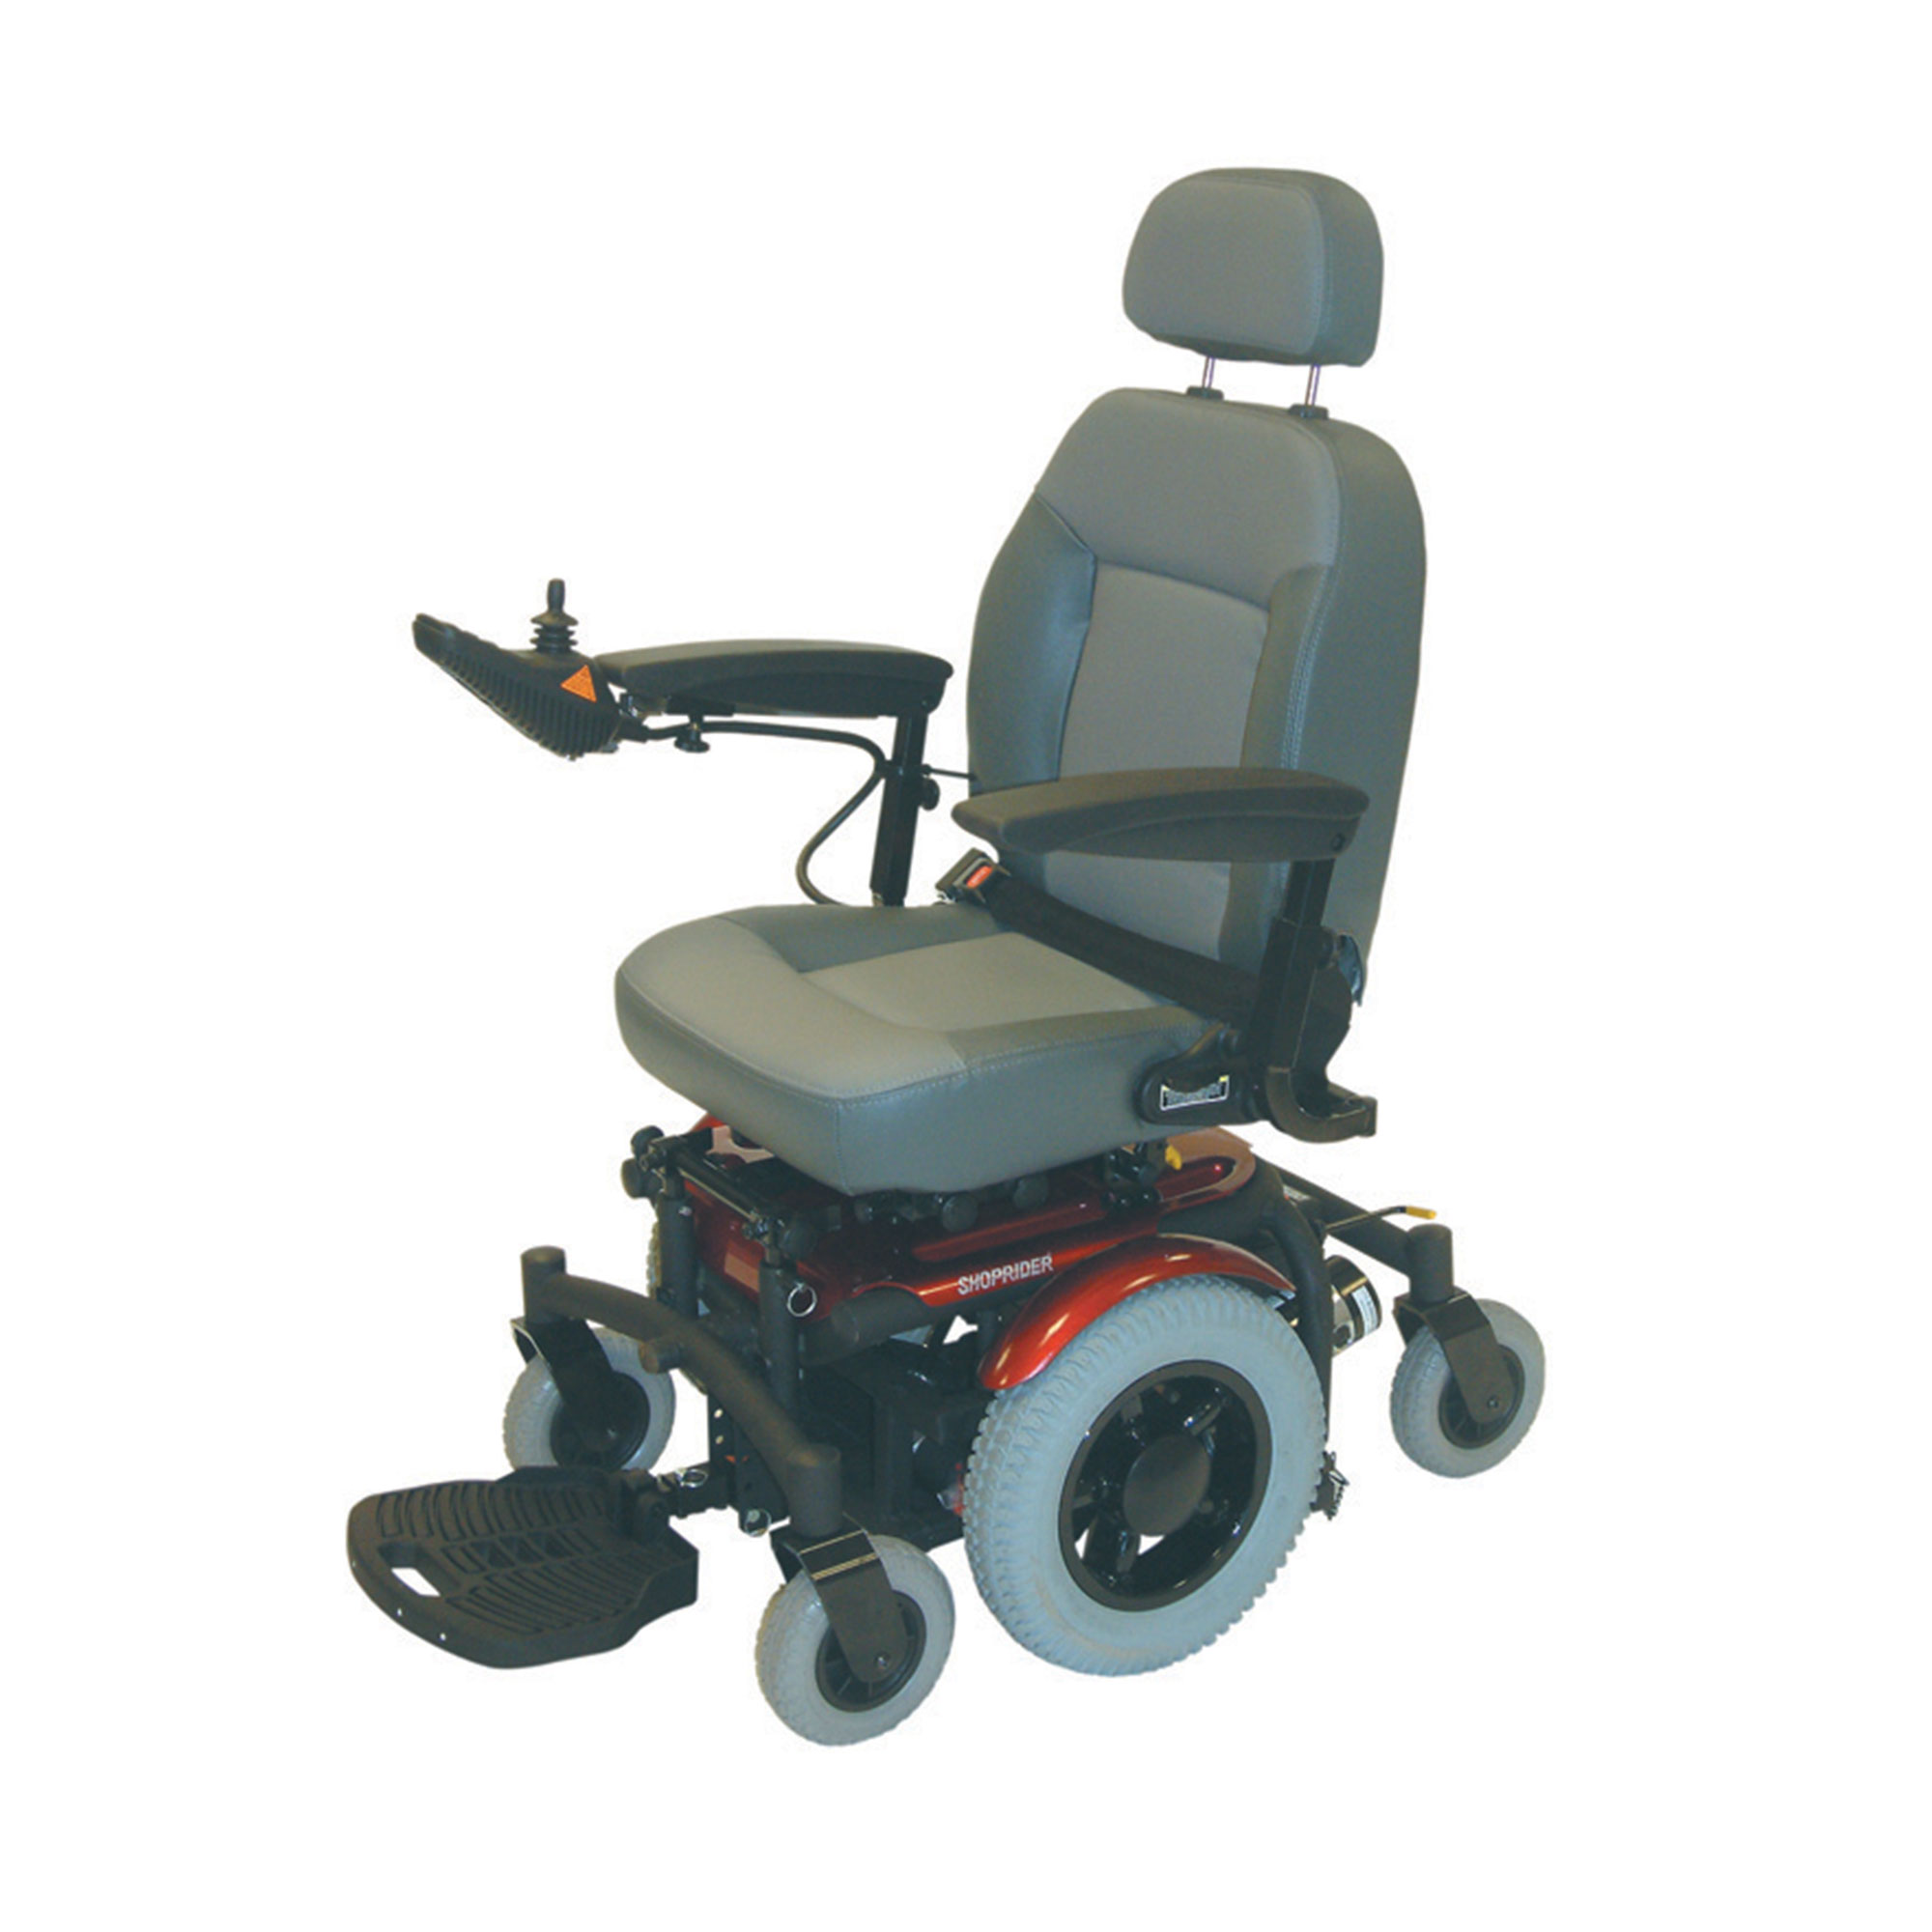 Shoprider Lugano Power Chair Roma Medical